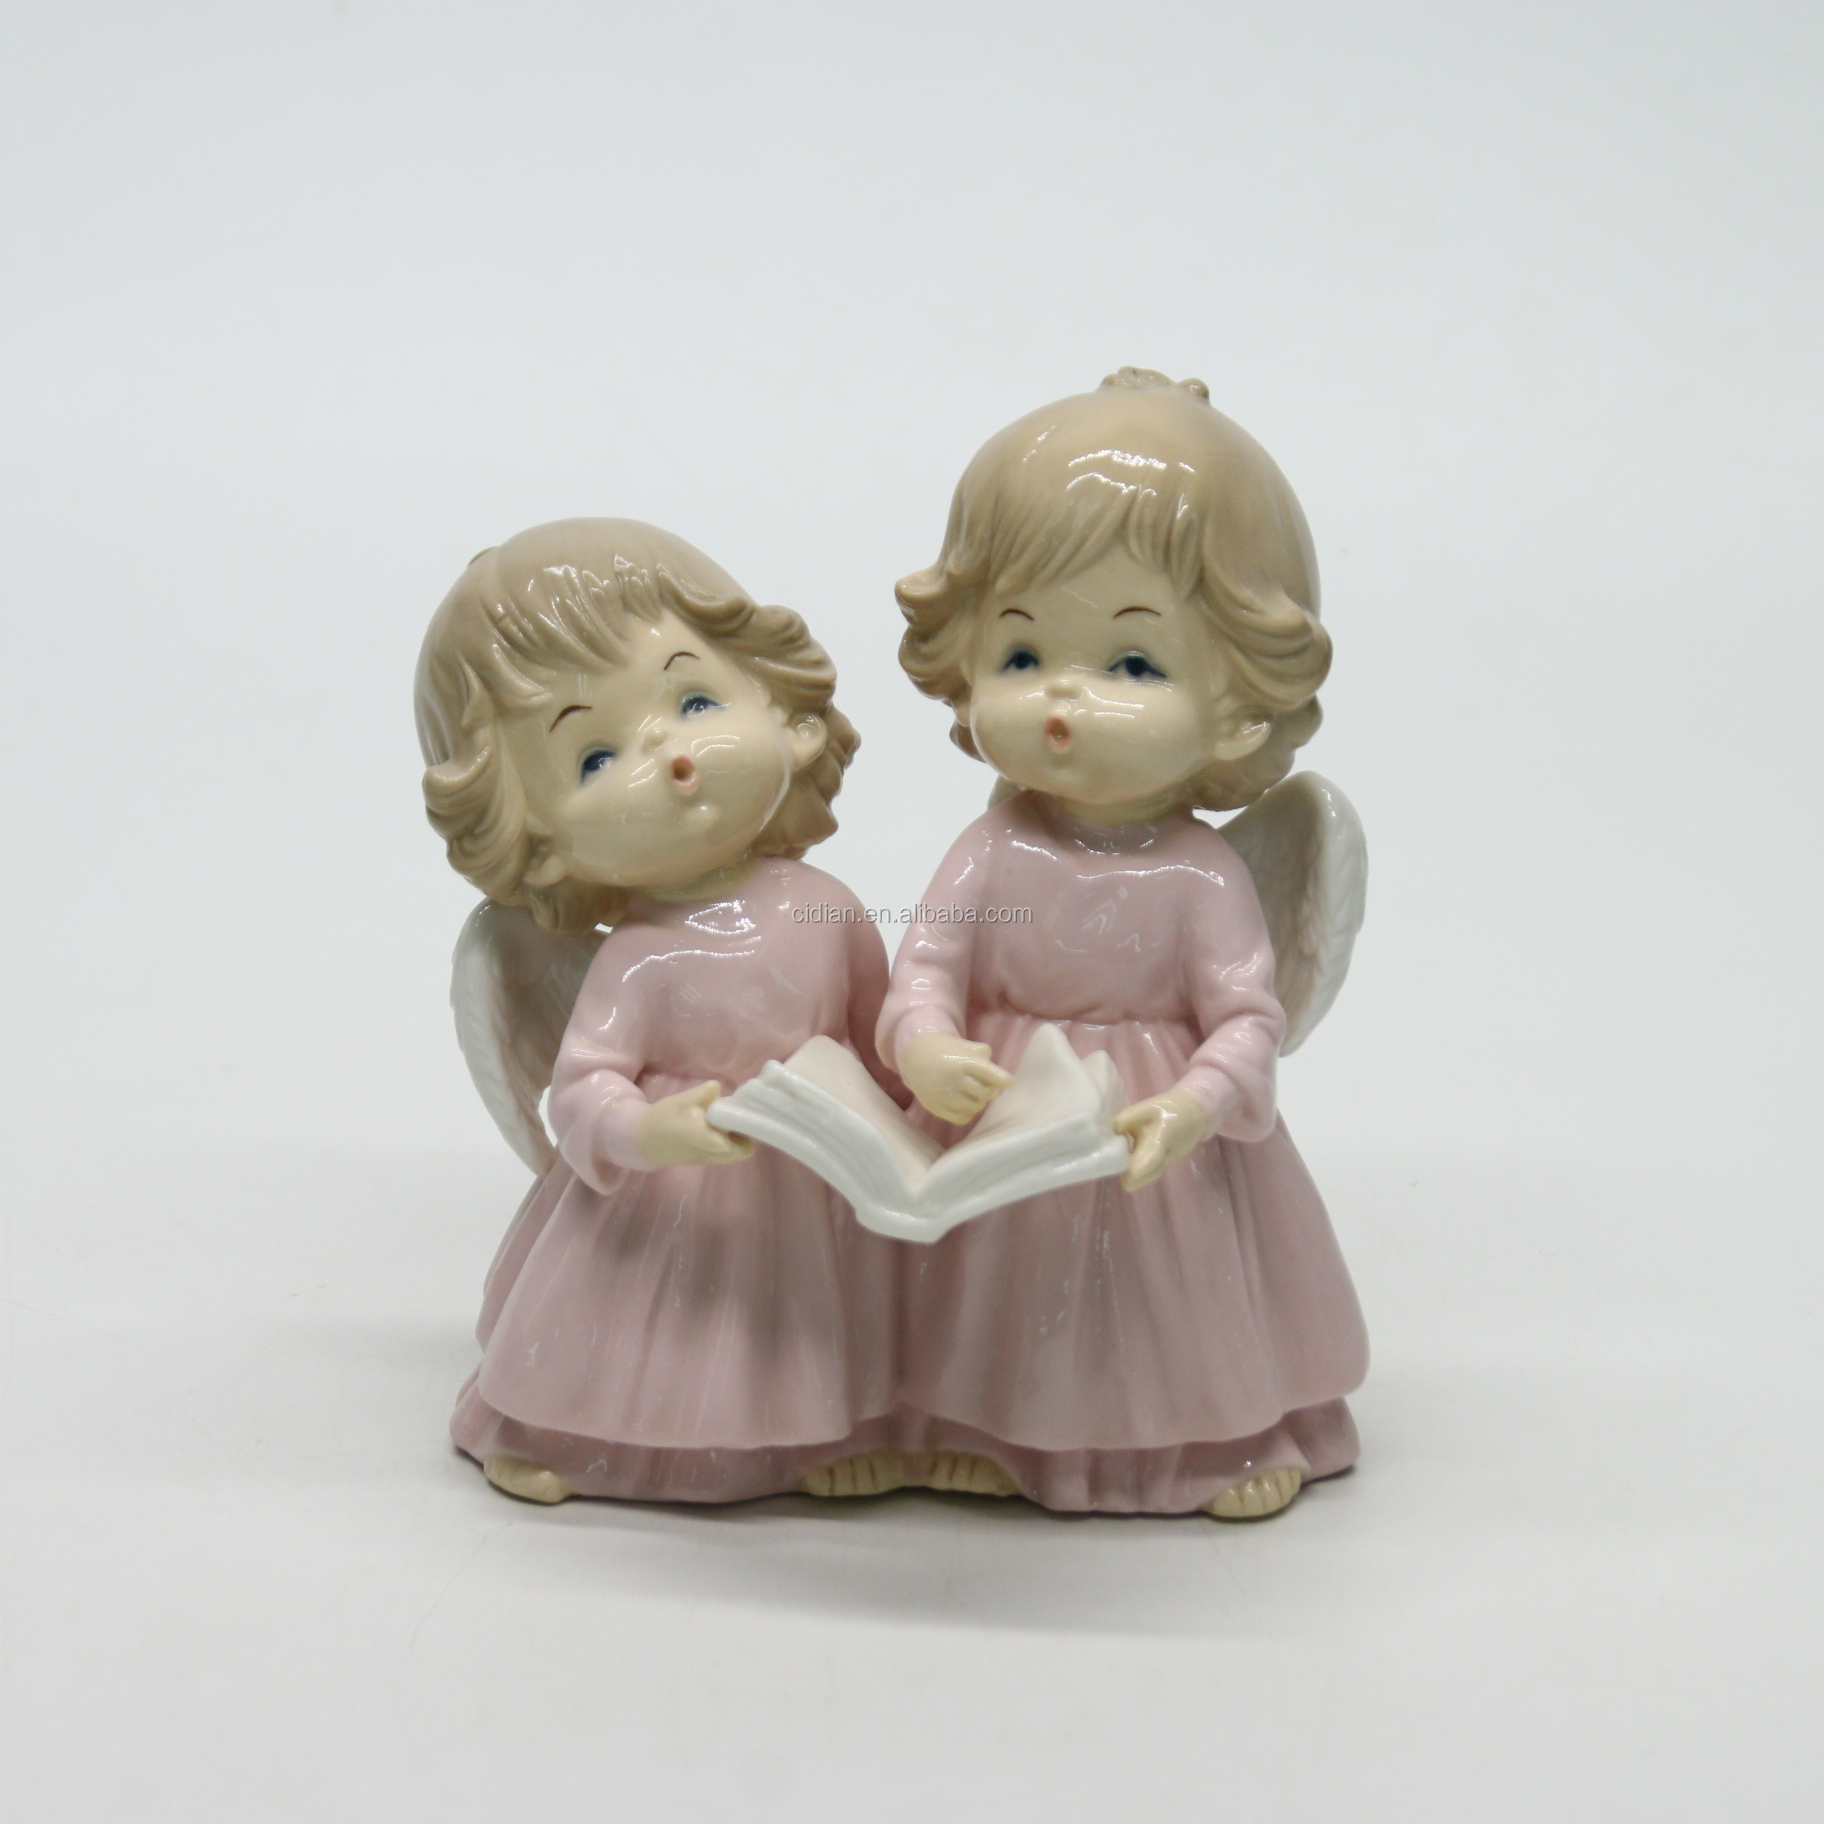 Baby angle sisters ceramic figurines for home decoration